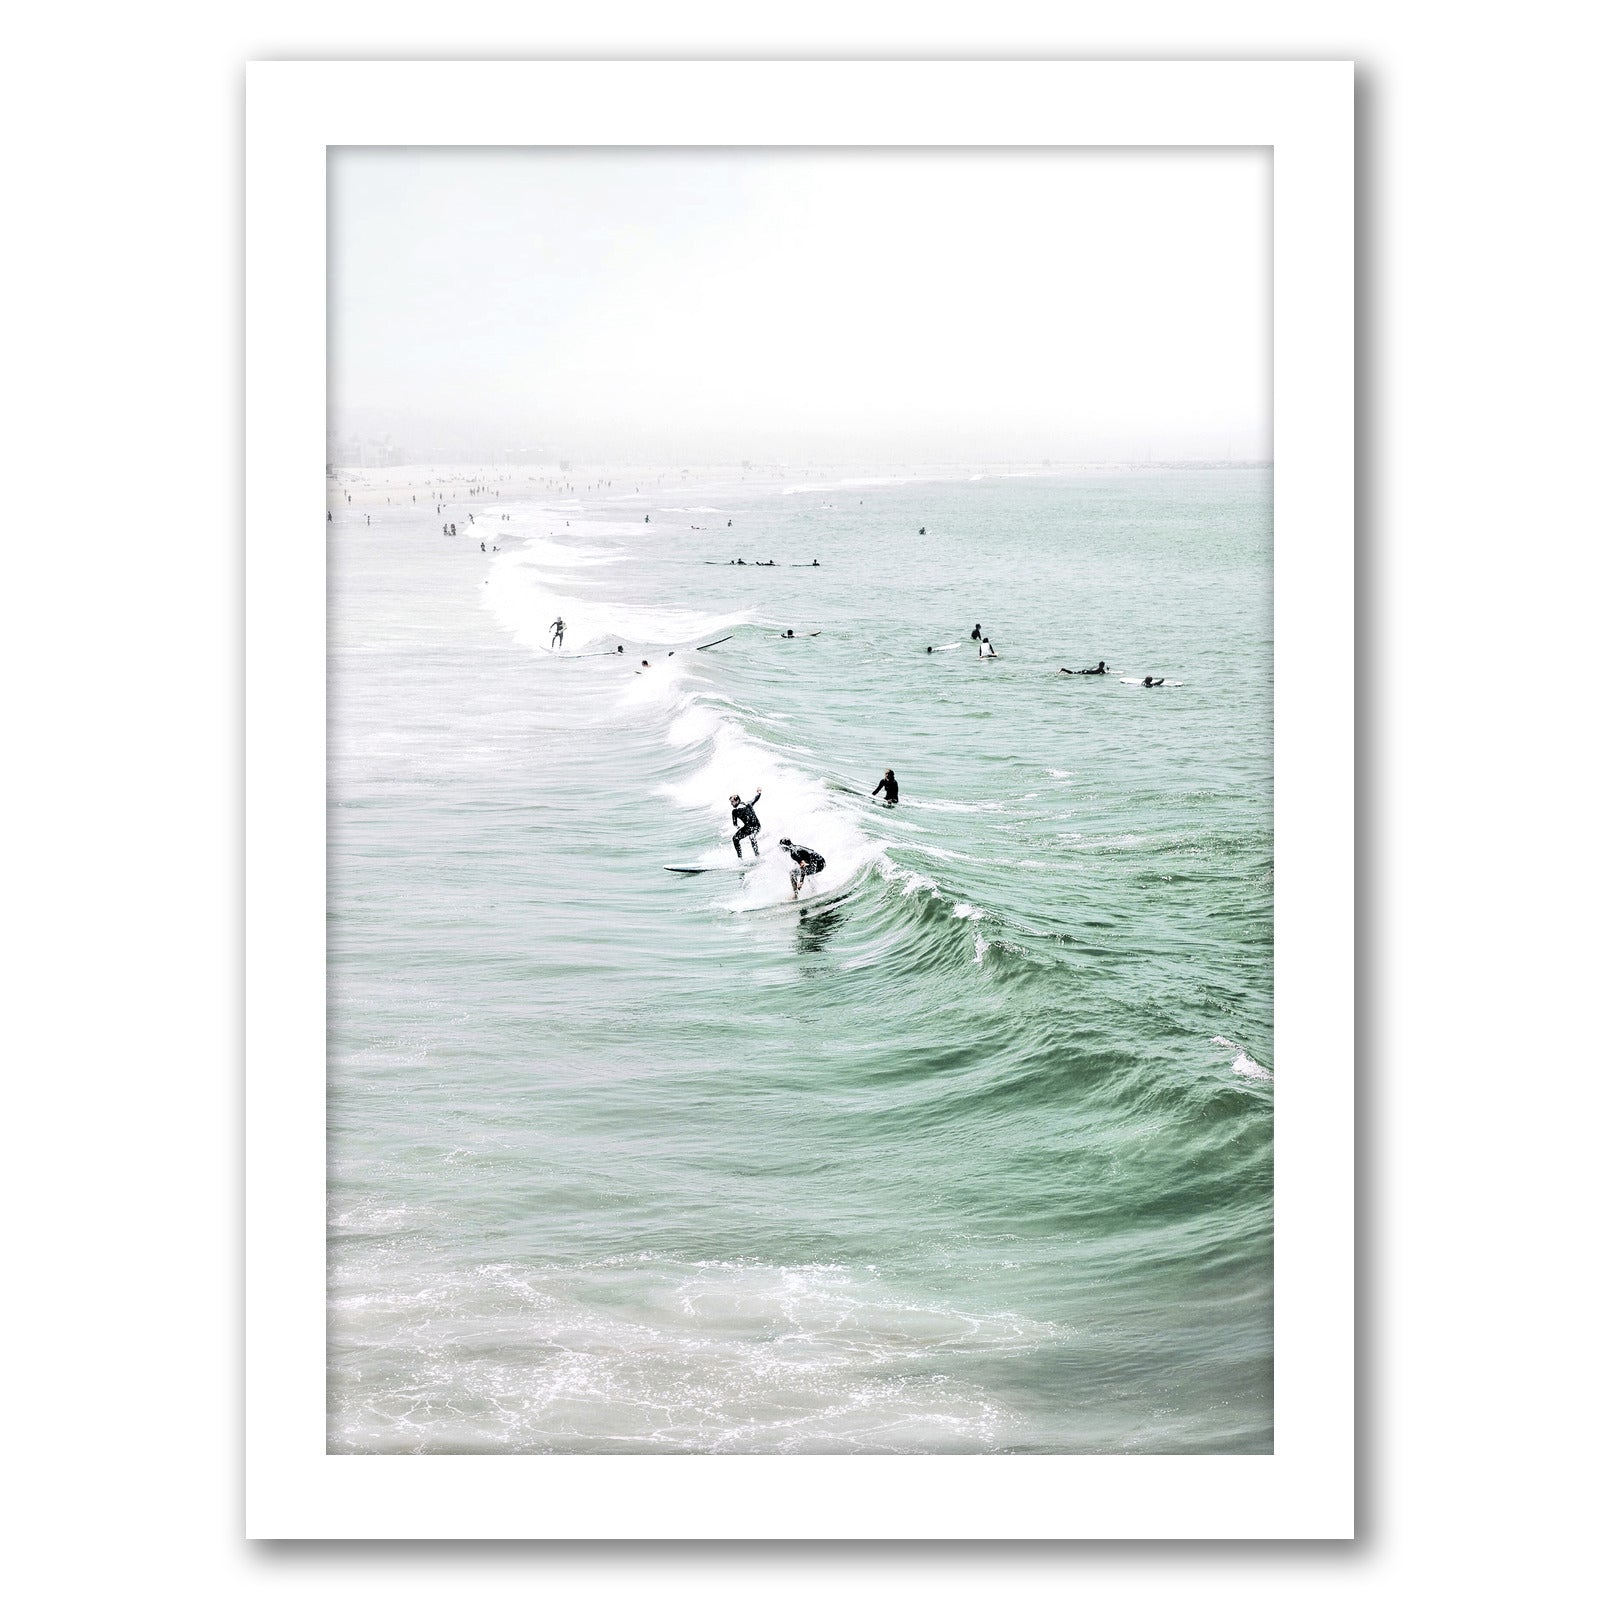 Summer California Beach by Tanya Shumkina - White Framed Print - Wall Art - Americanflat